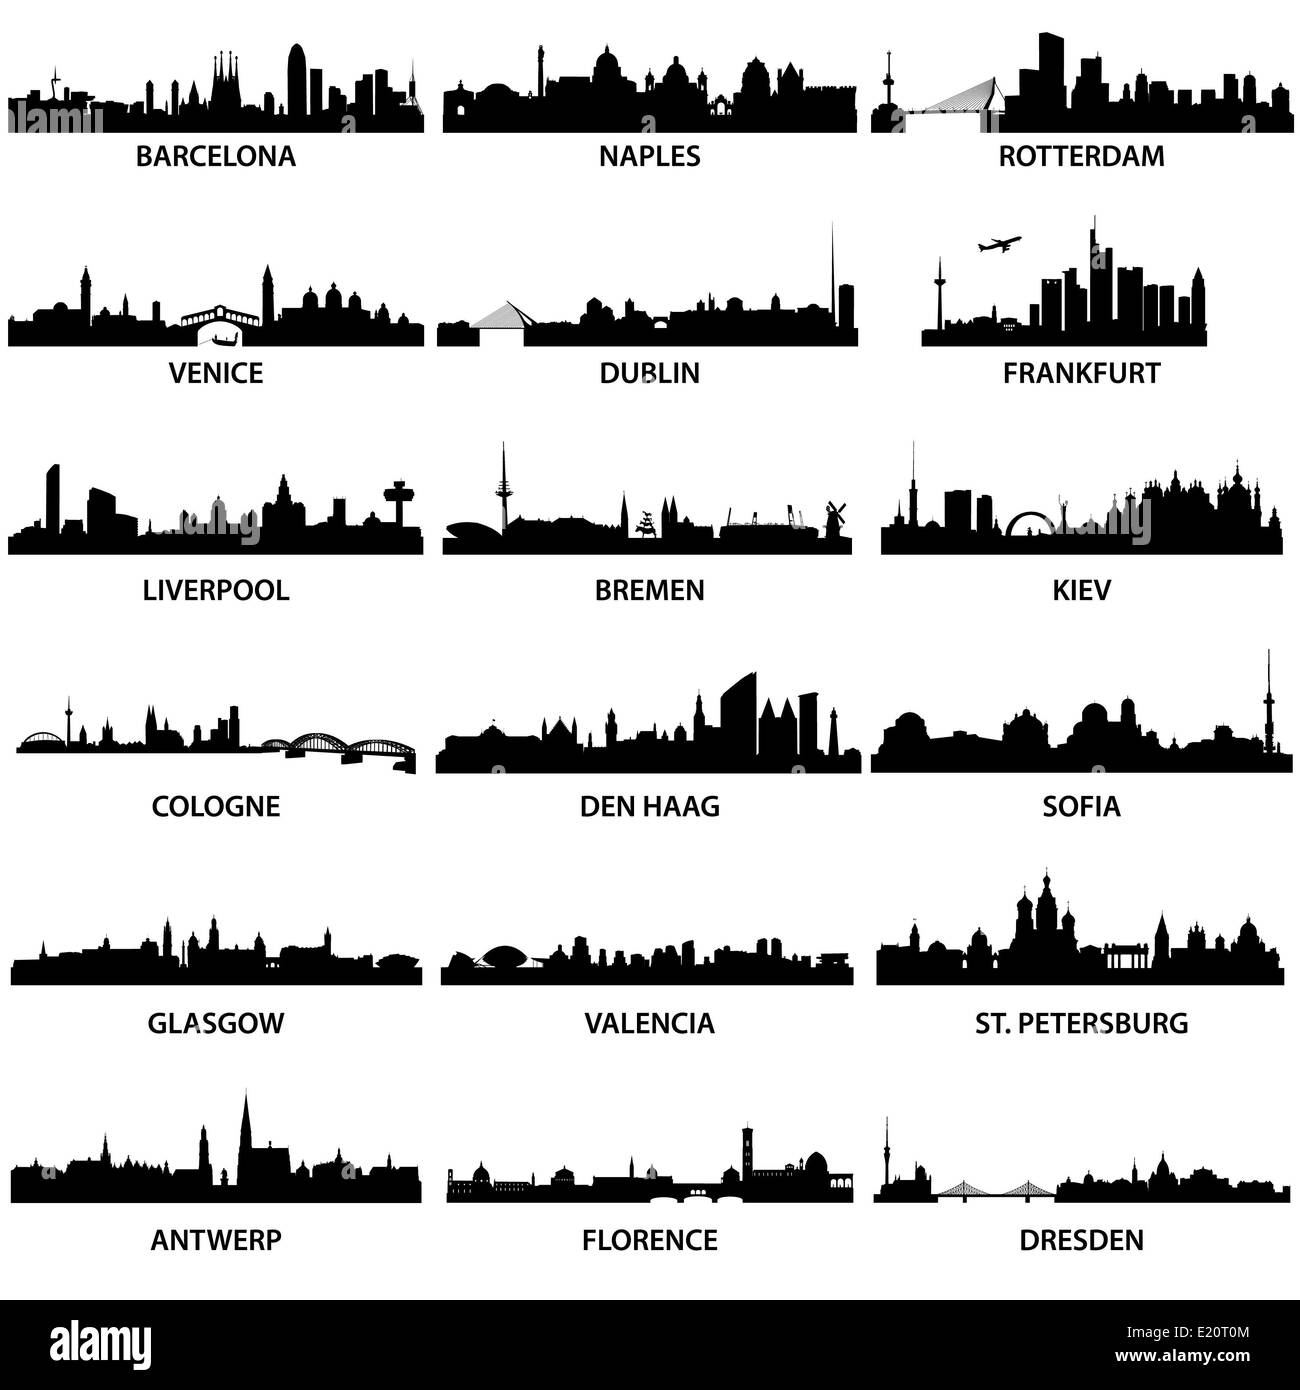 European City Skylines - Stock Image